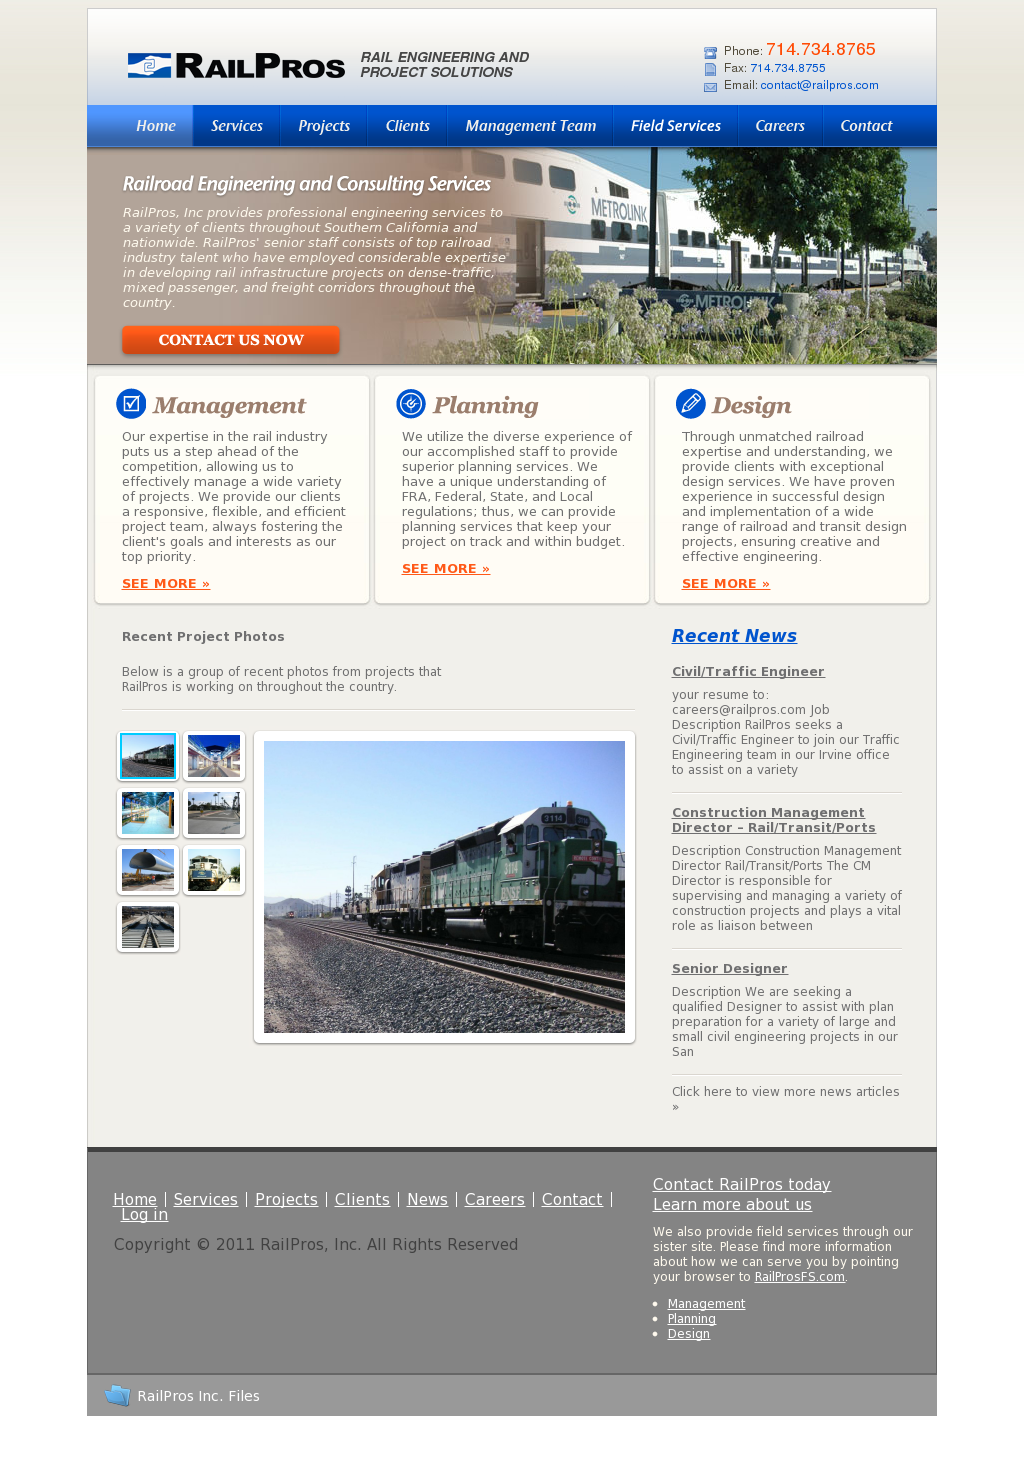 Railpros careers